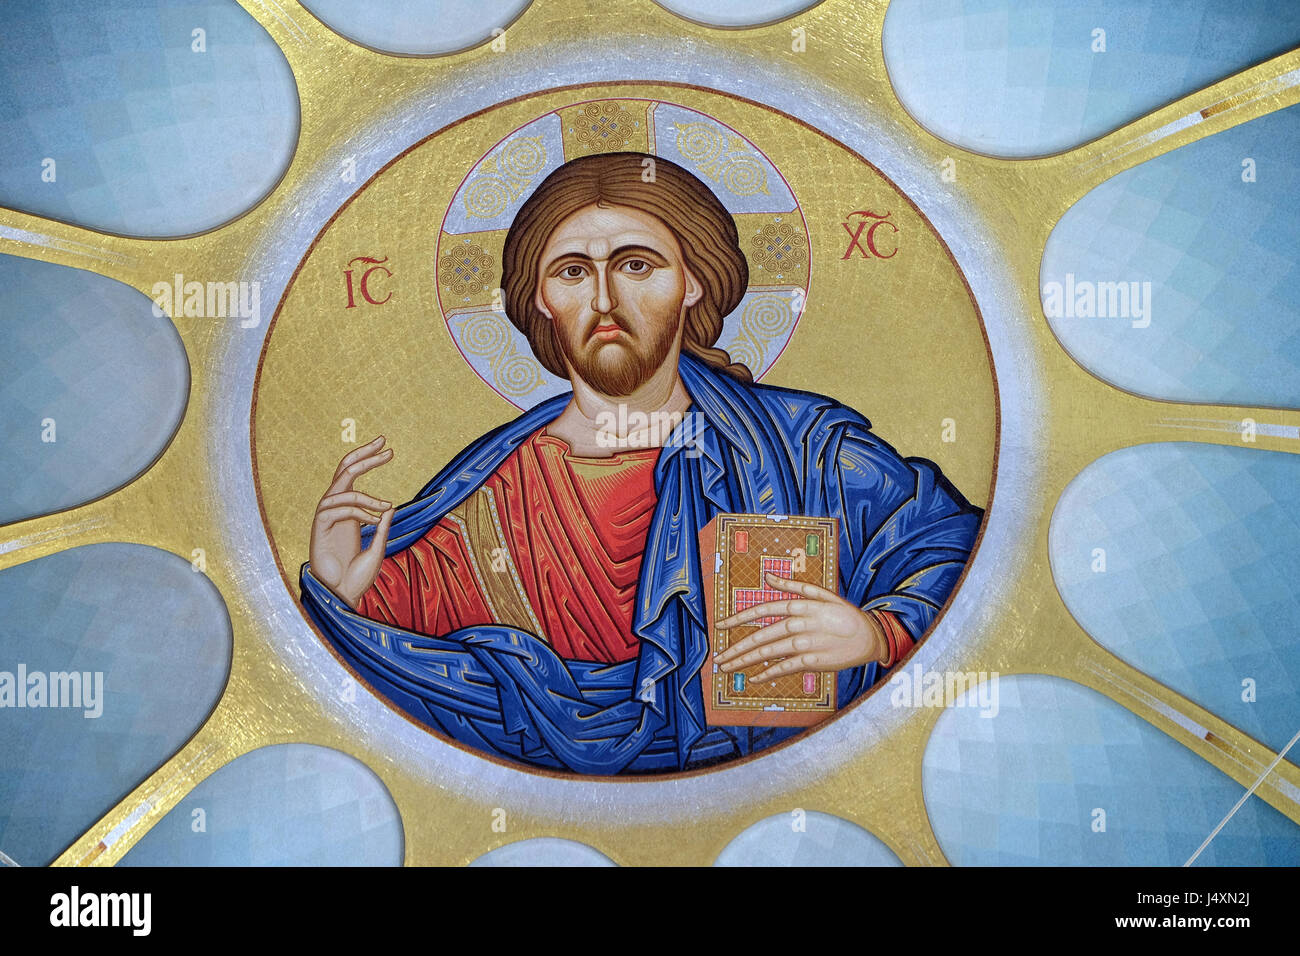 Christ Pantocrator within dome of Orthodox Cathedral of the Resurrection of Christ in Tirana, Albania - Stock Image